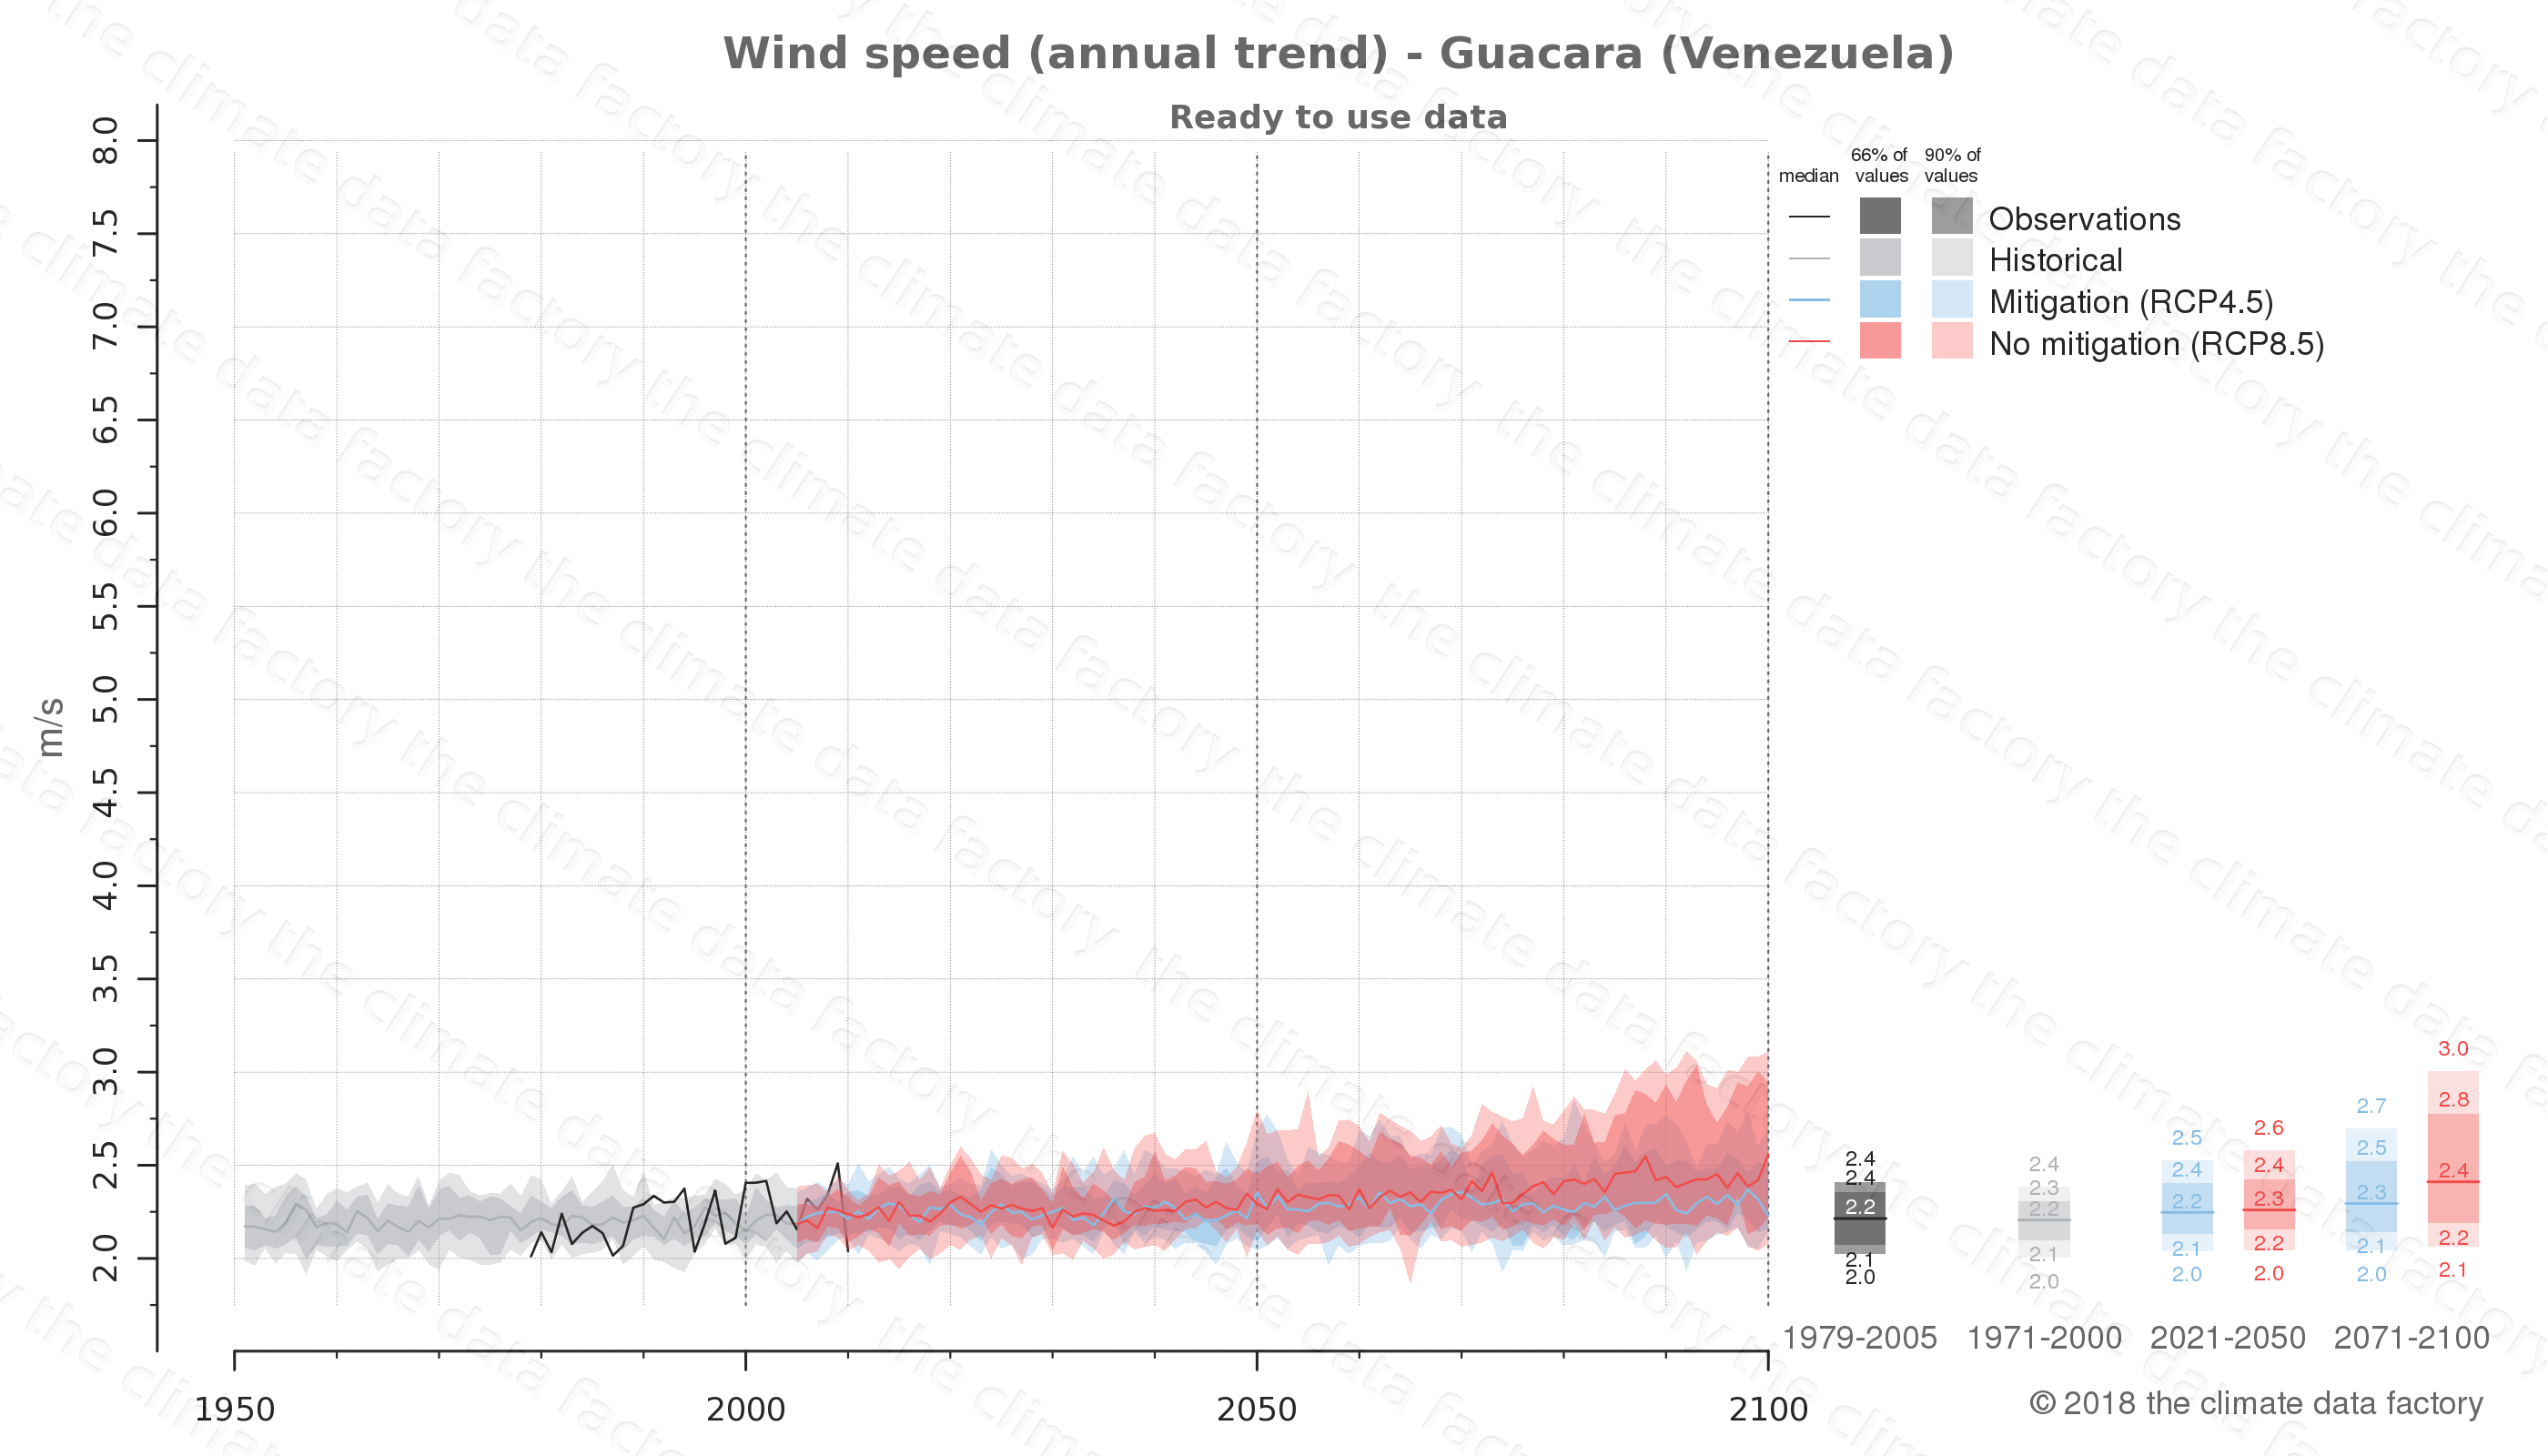 climate change data policy adaptation climate graph city data wind-speed guacara venezuela